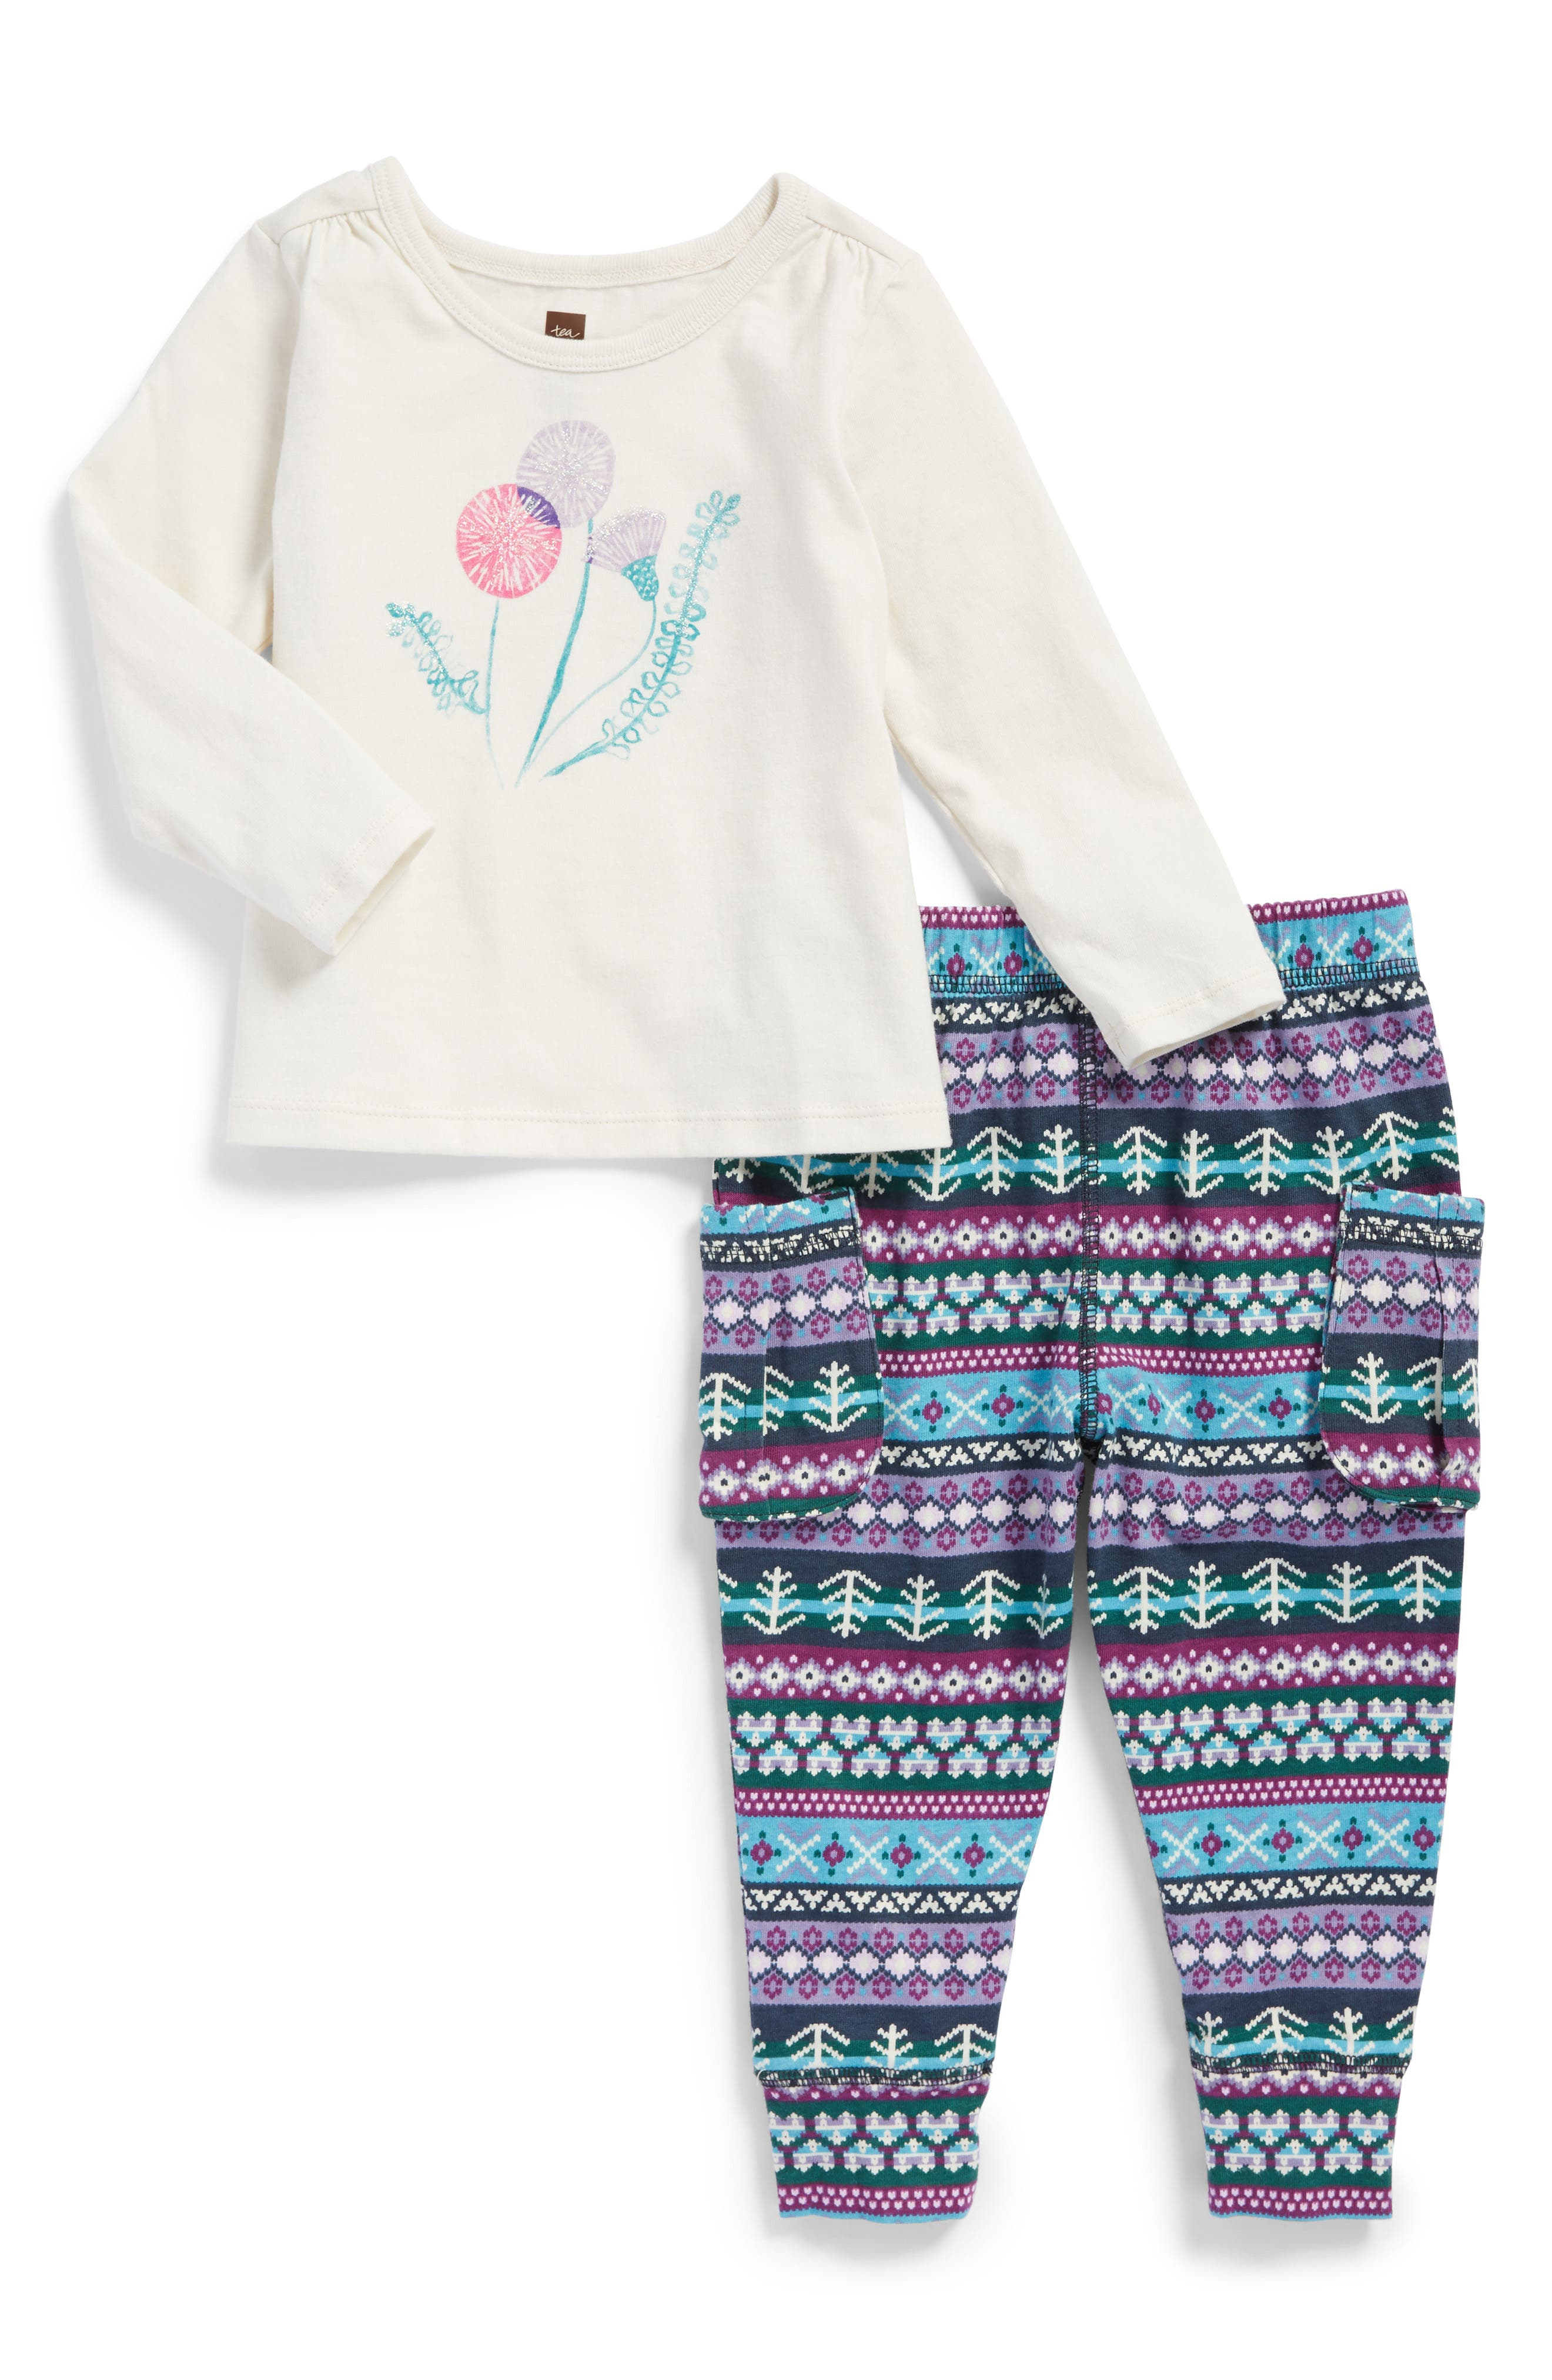 Main Image - Tea Collection Thistle Top & Leggings Set (Baby Girls)